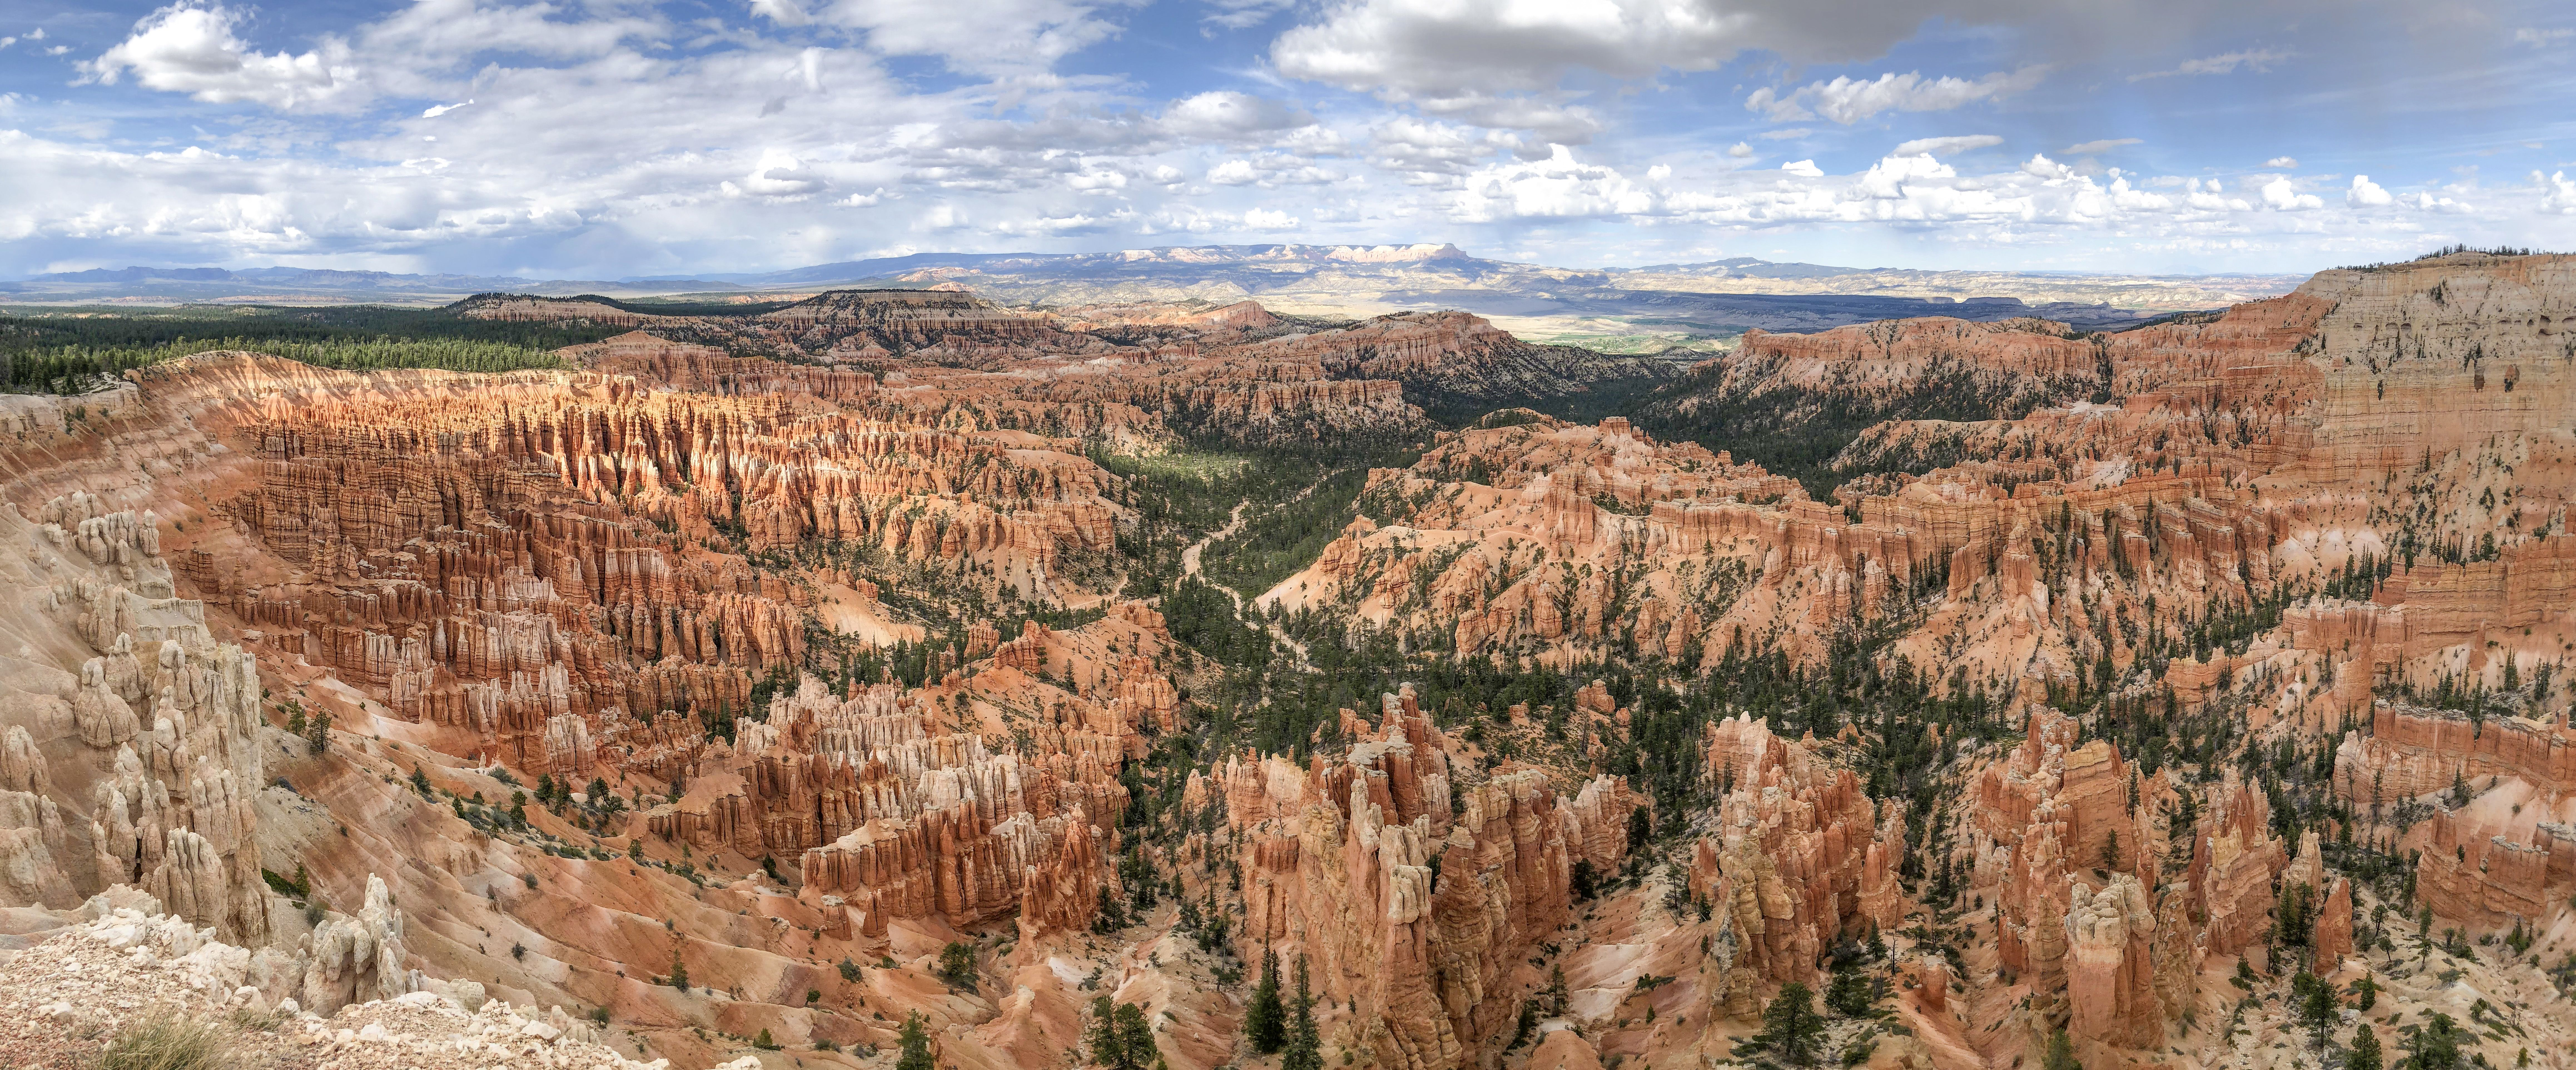 Bryce-Canyon-Nationalpark im US-Bundesstaat